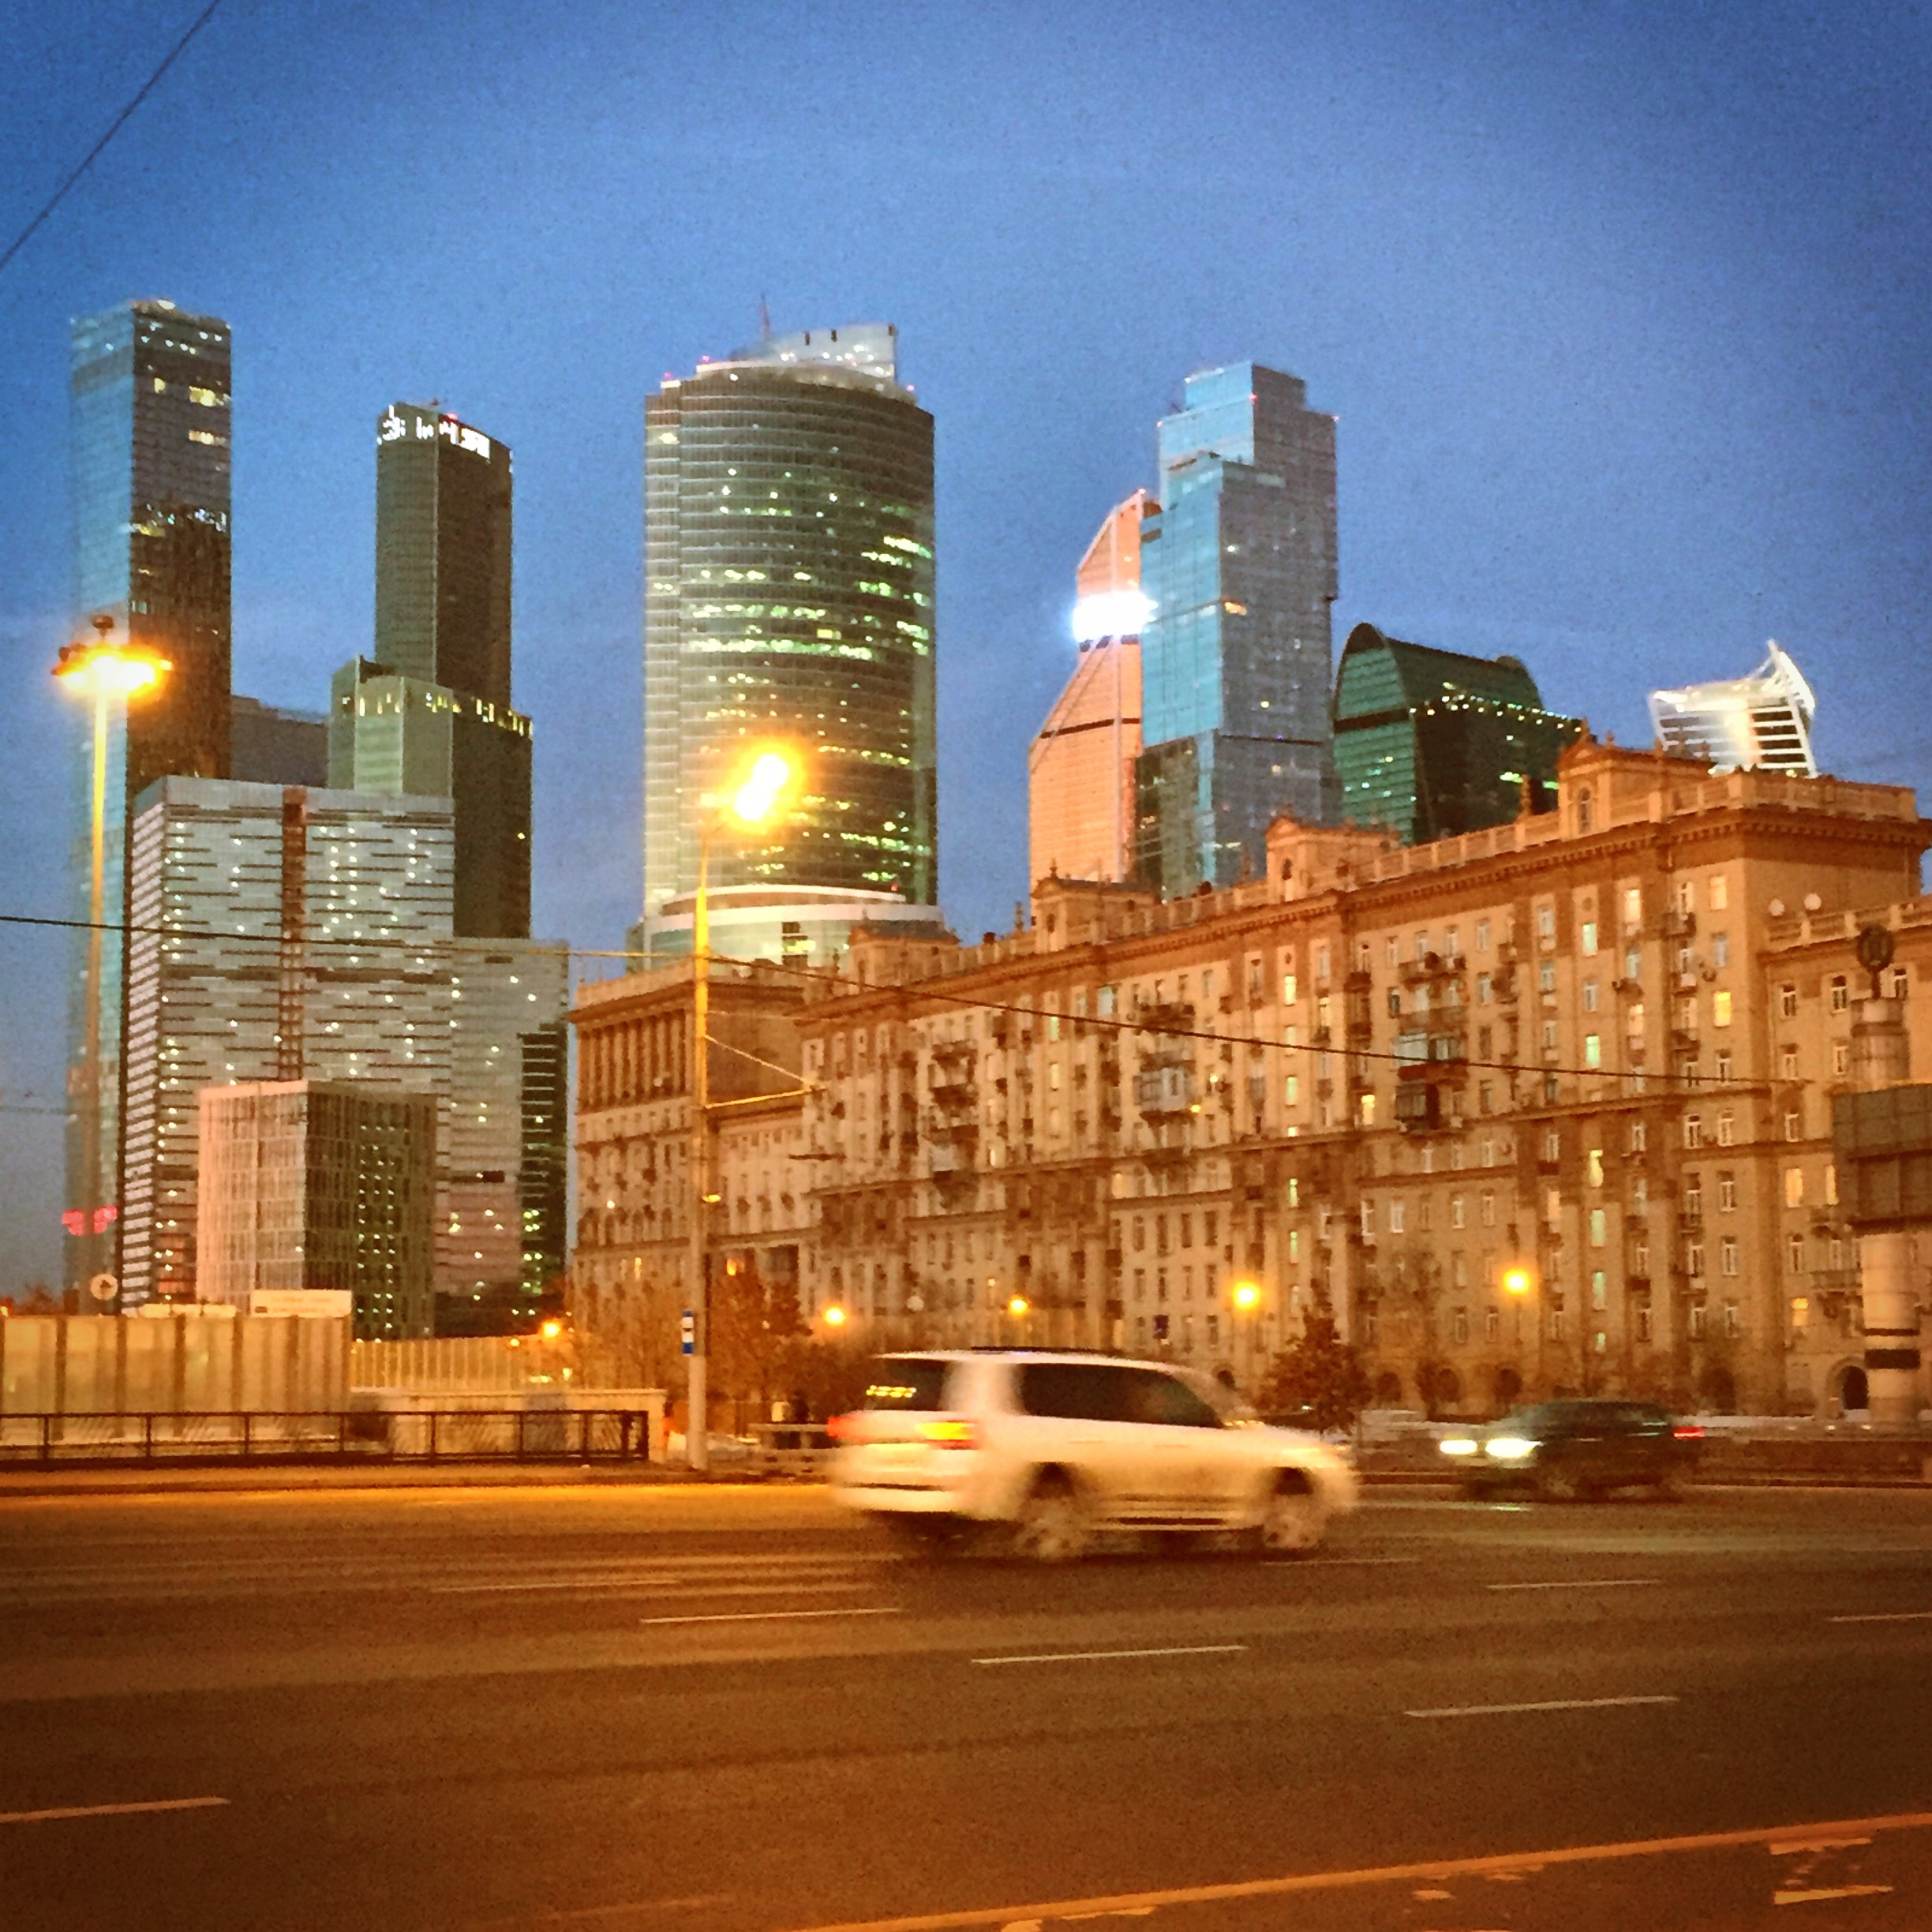 Moscow City beleuchtet